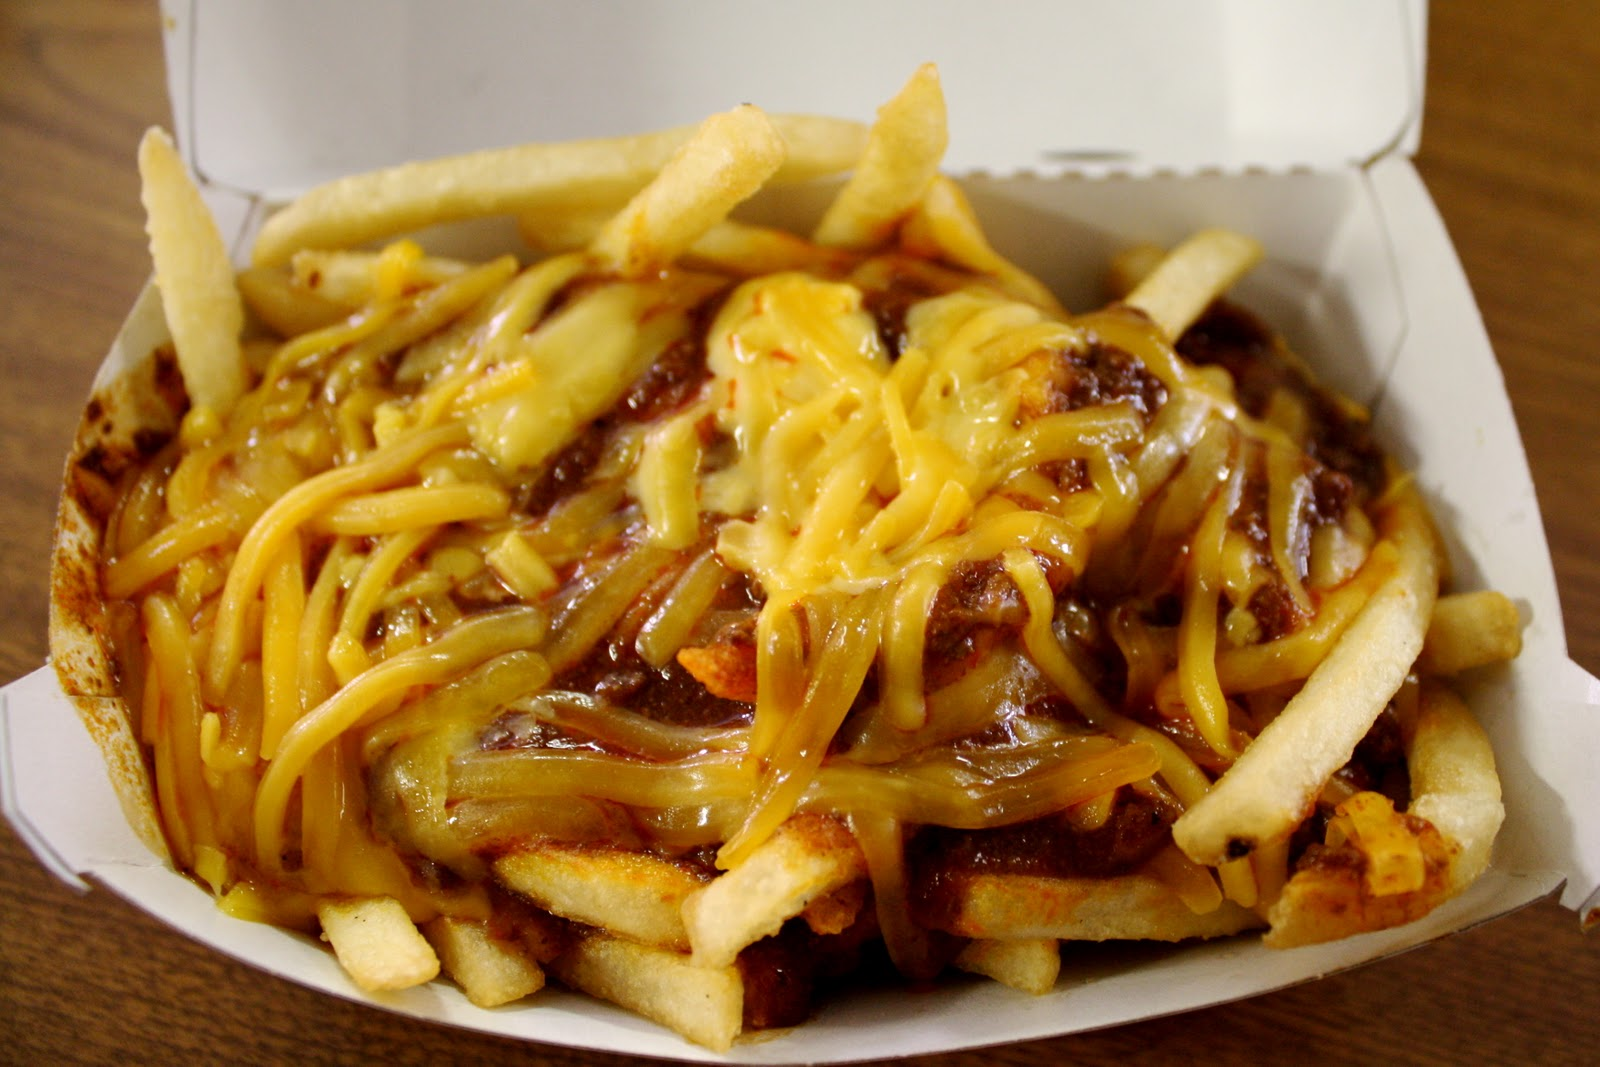 recipe: places that sell chili cheese fries near me [18]